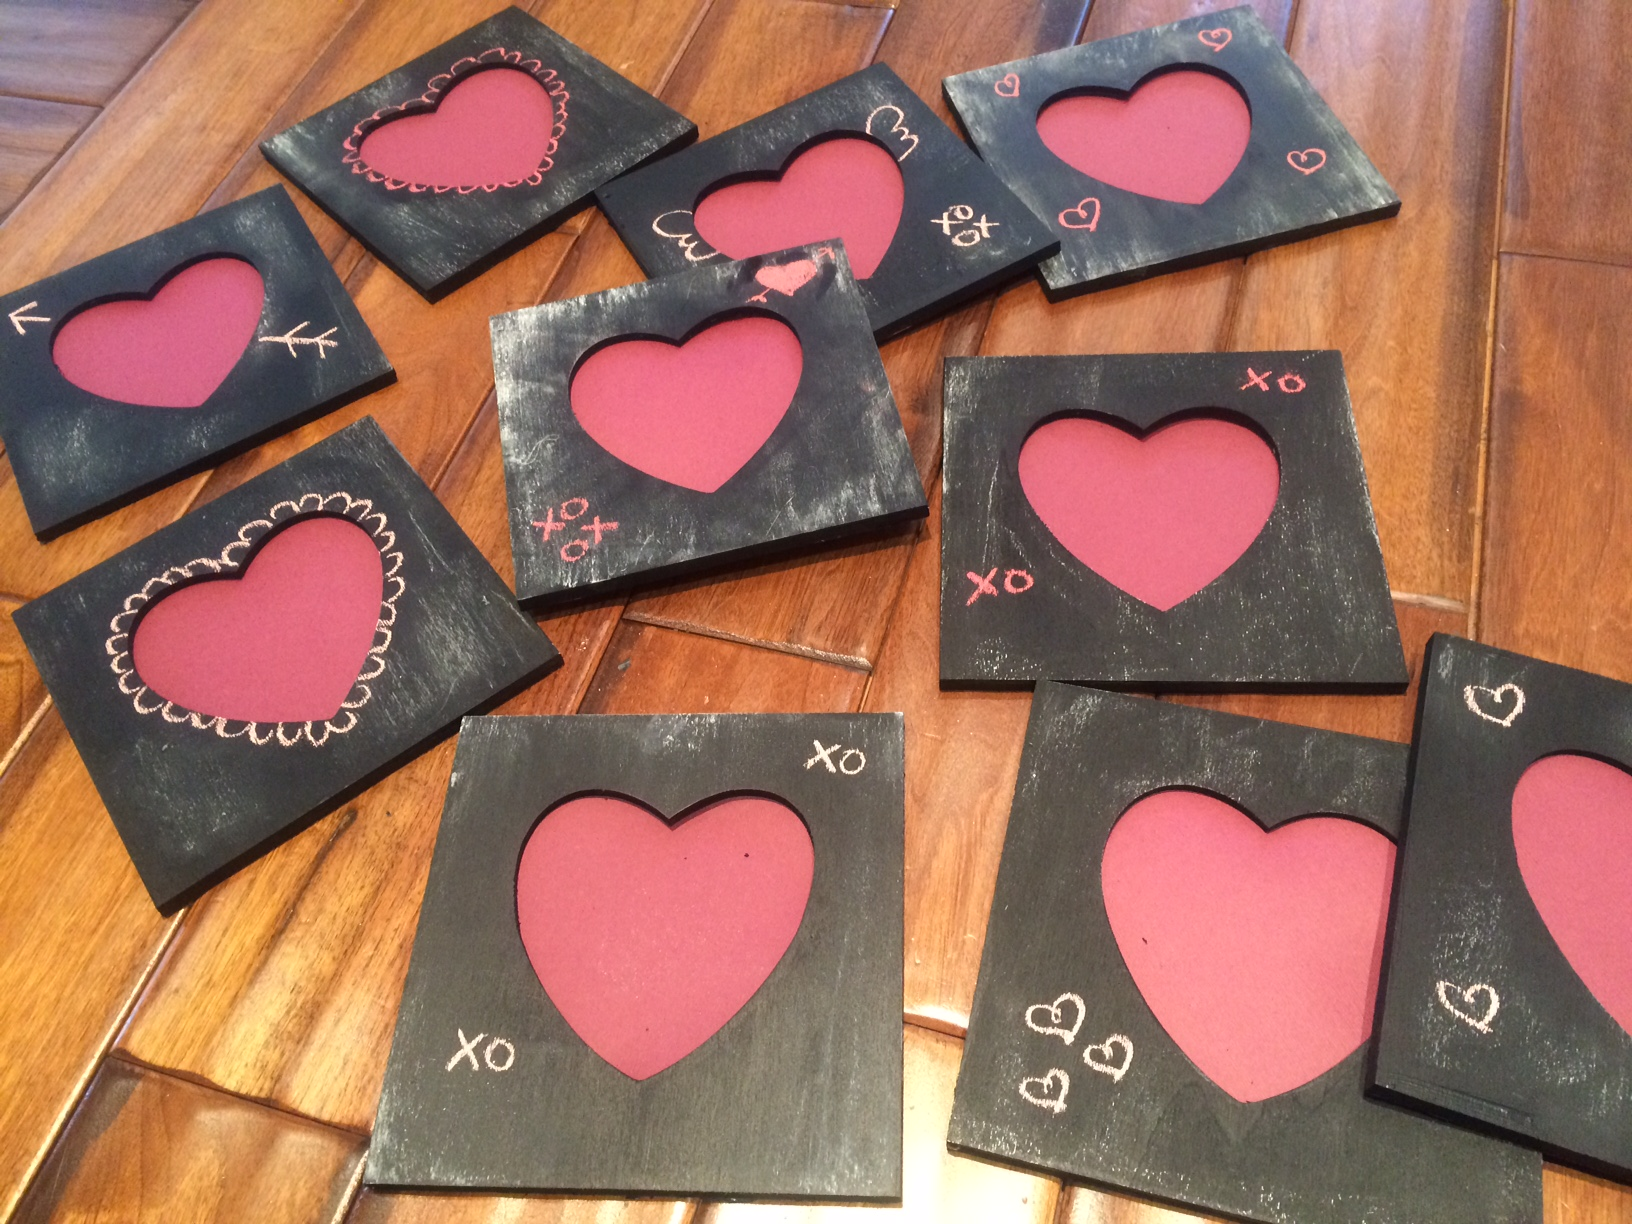 Some heart-shaped chalkboard photo frames I made for the couple's friends and family